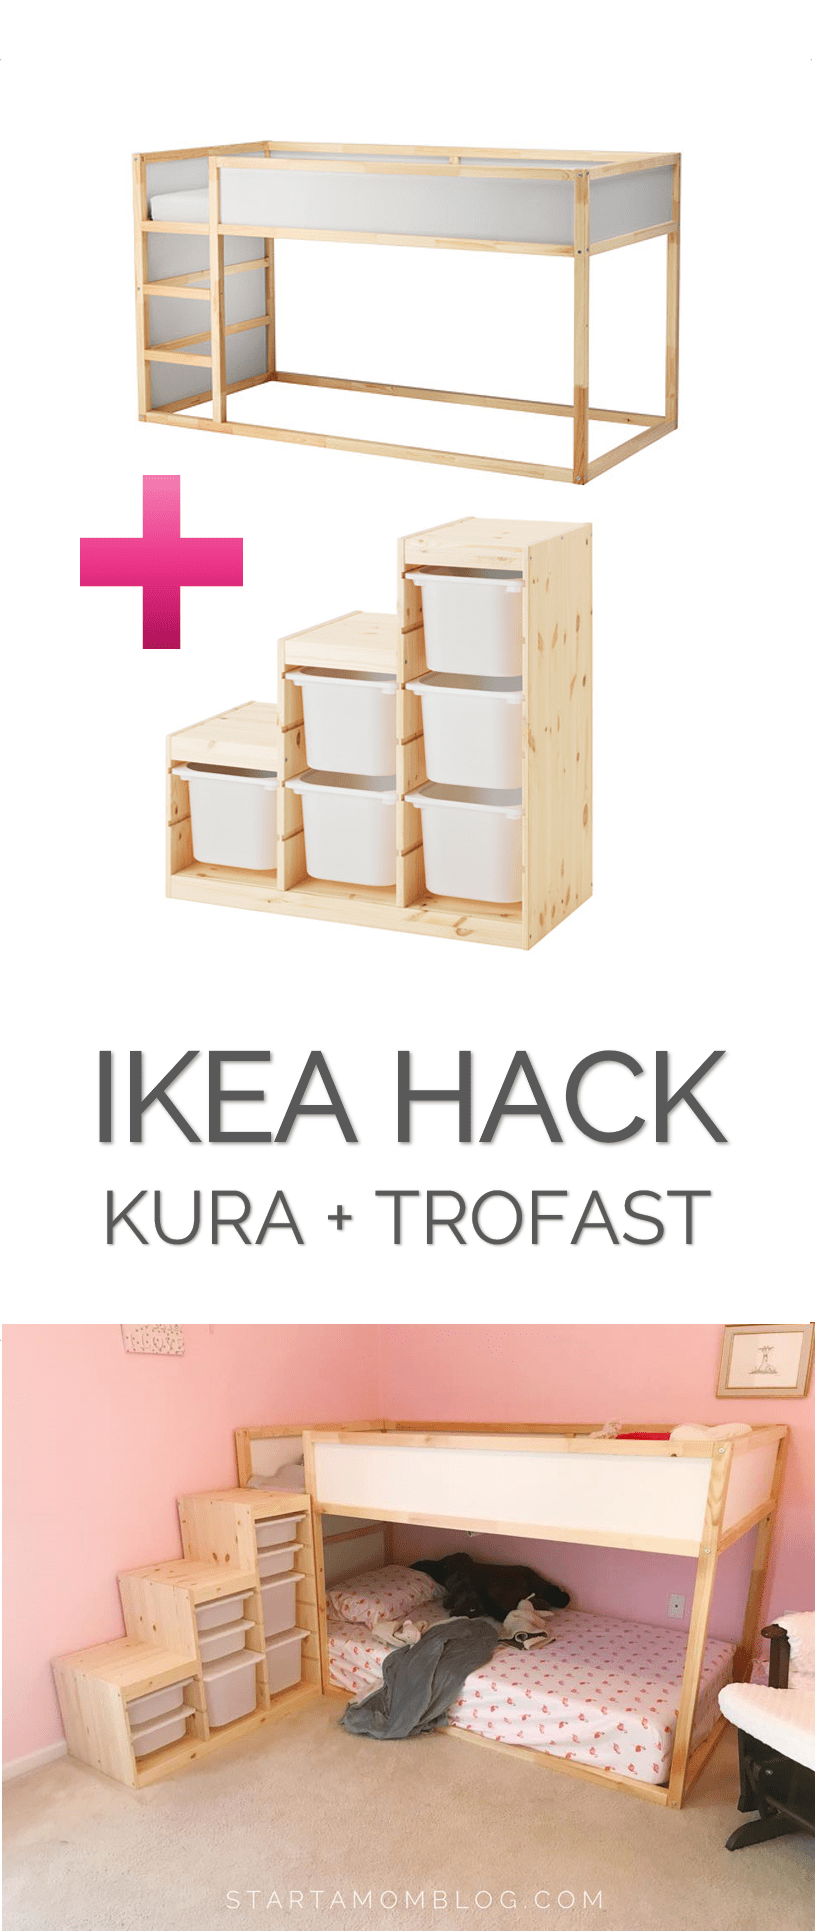 Ikea Hack for a Toddler Bunk bed KURA plus TROFAST super